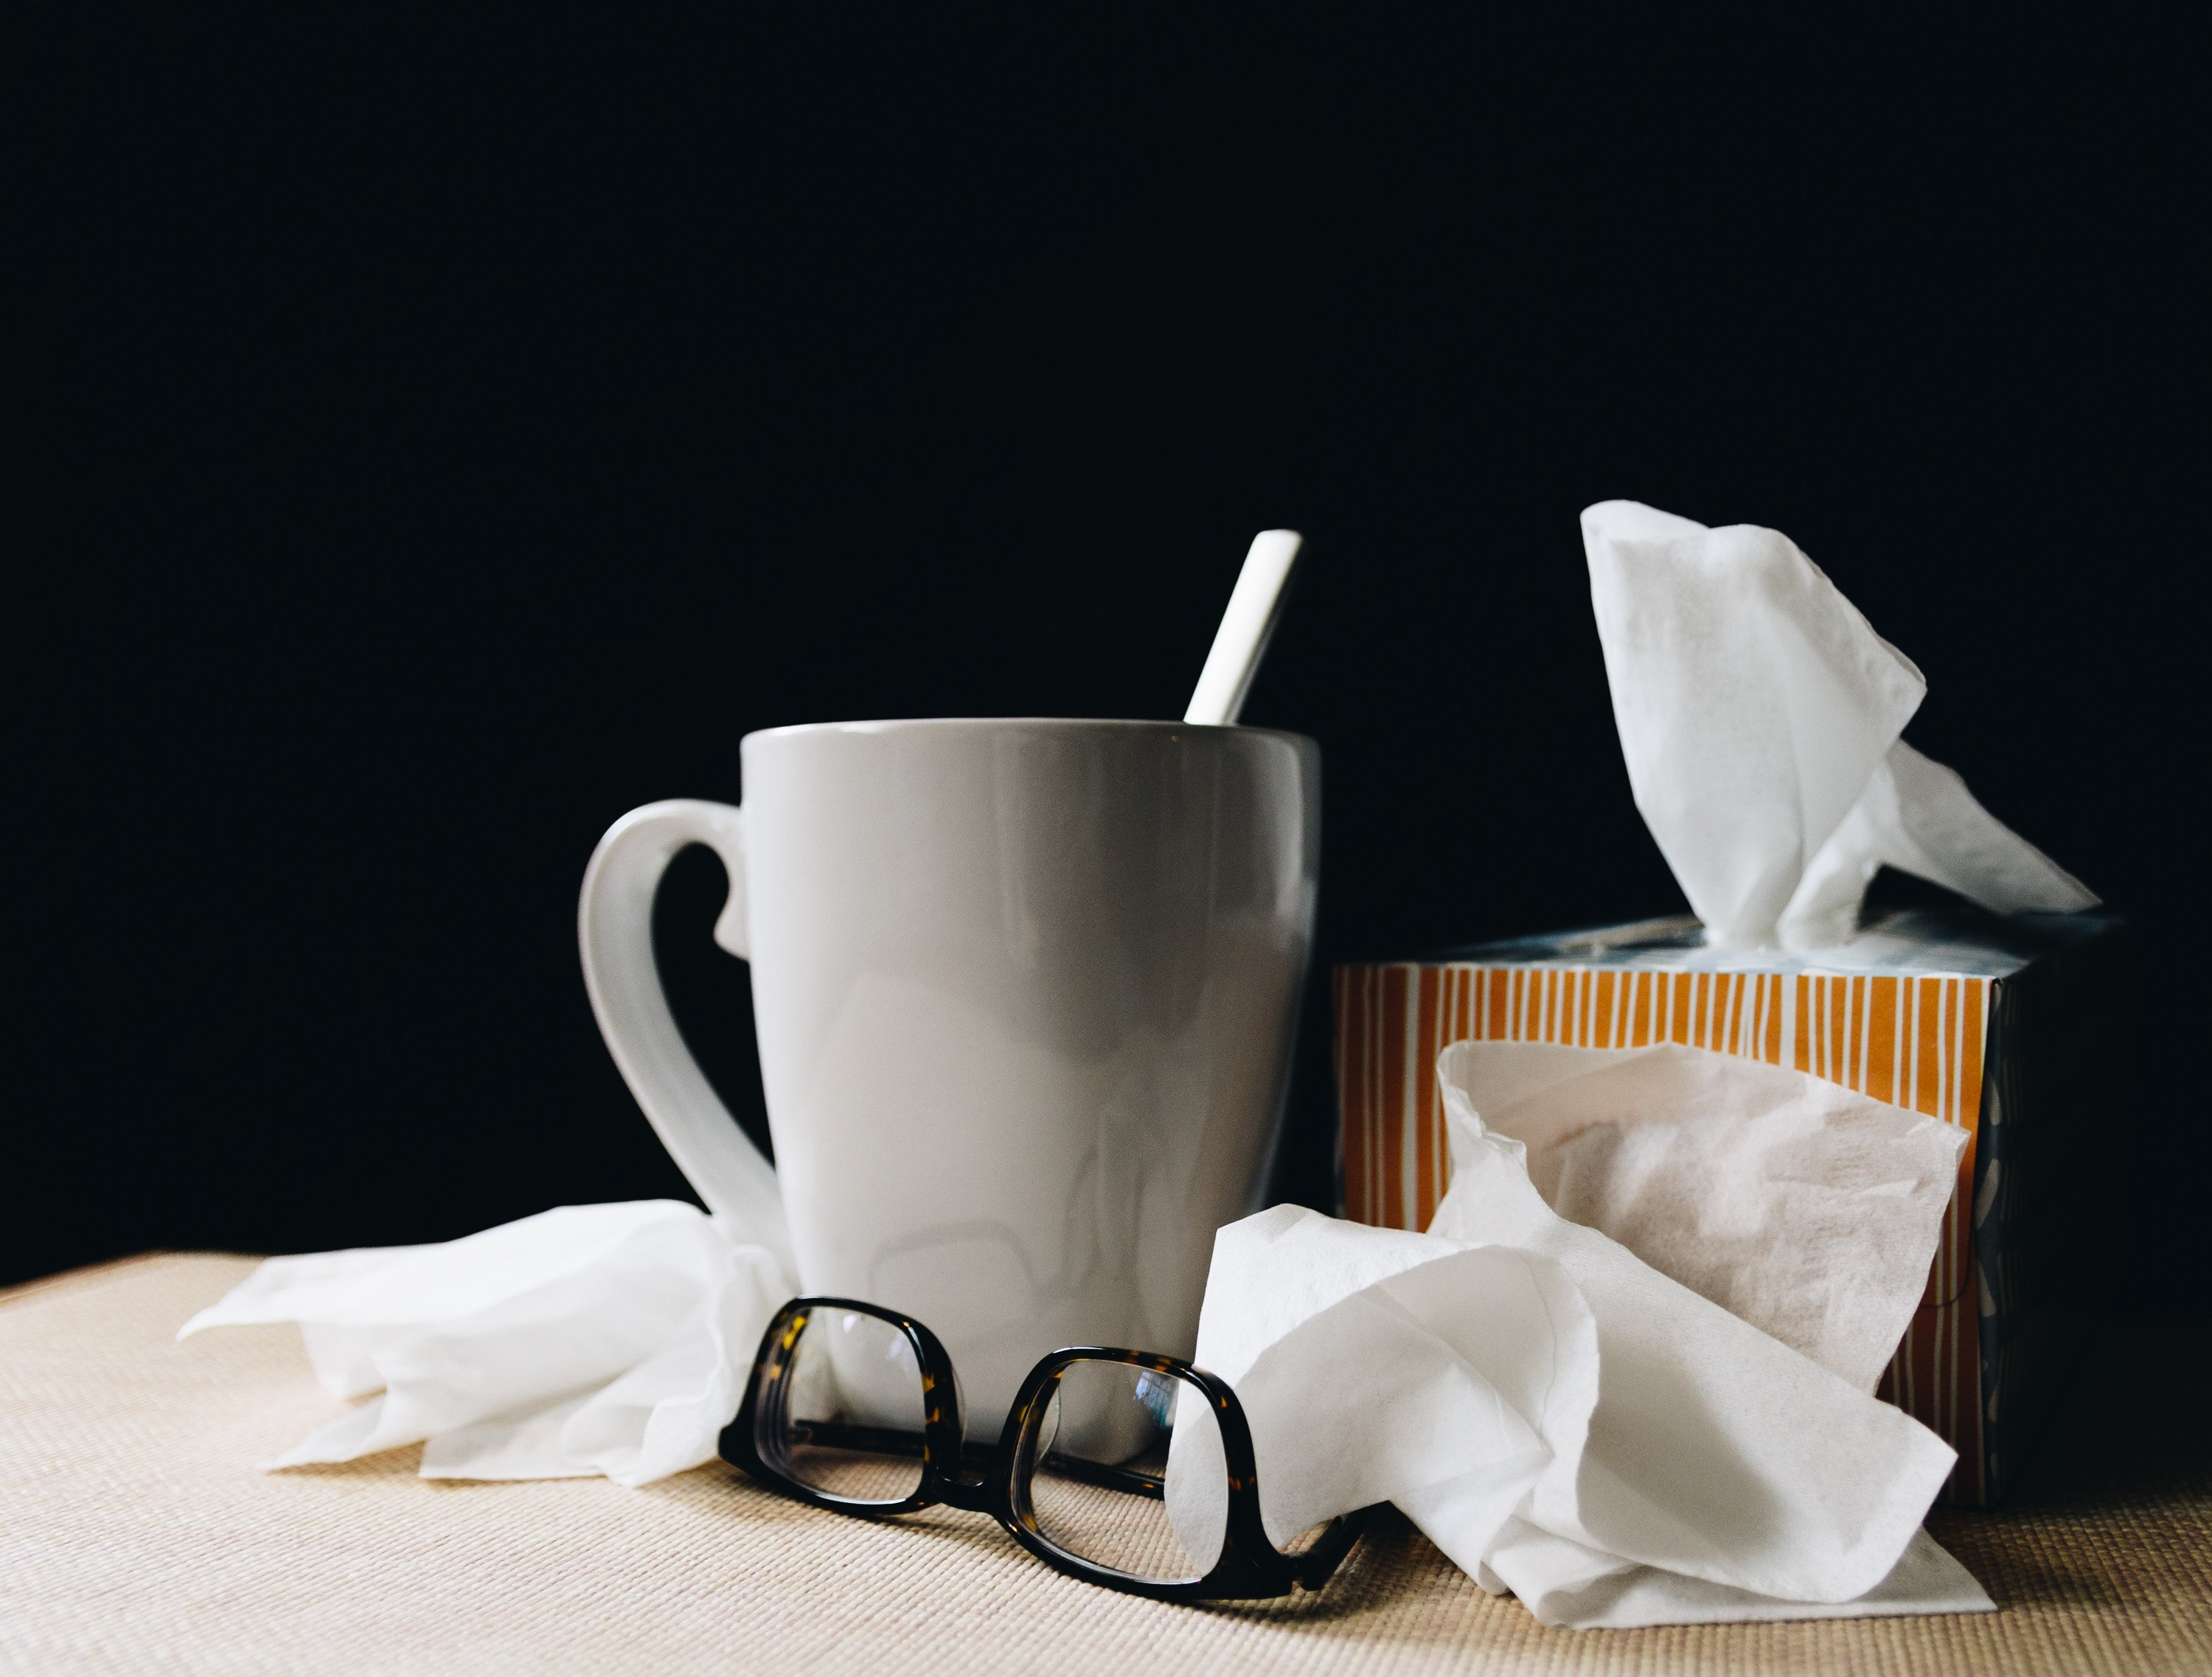 SCS   CDC Recommends Taking 3 Actions to Fight the Flu